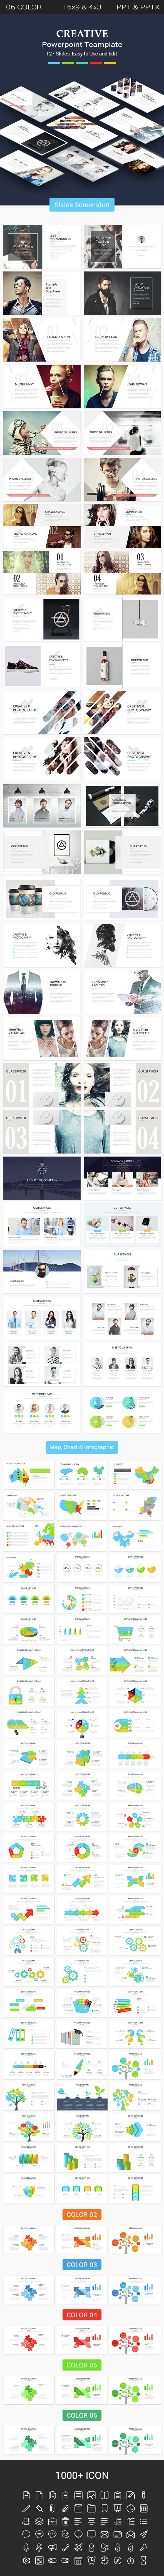 Creative Powerpoint Presentation Template. Download here…